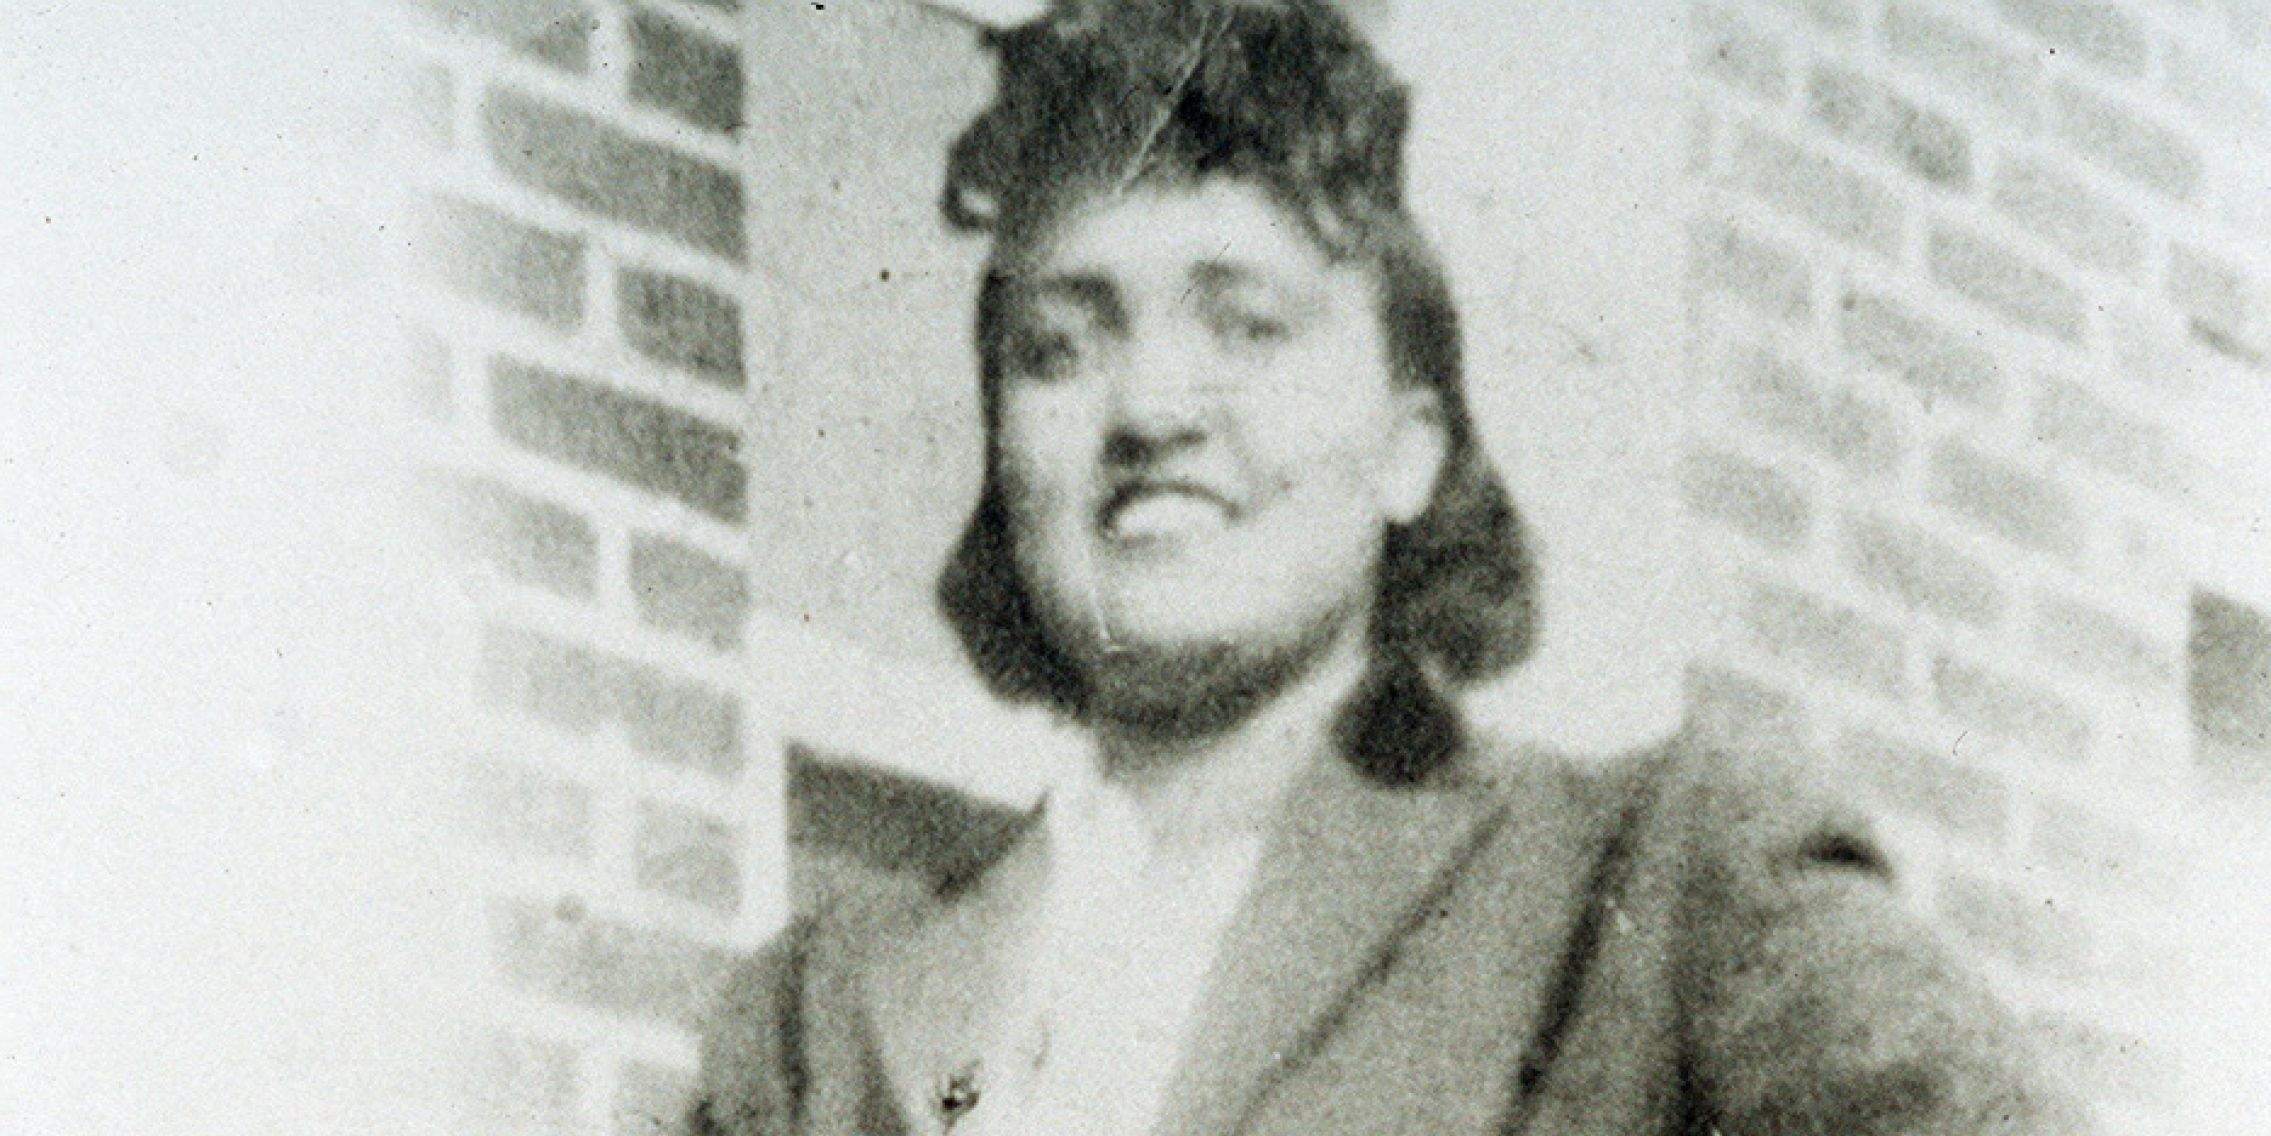 Henrietta Lacks Named After New Building at Johns Hopkins